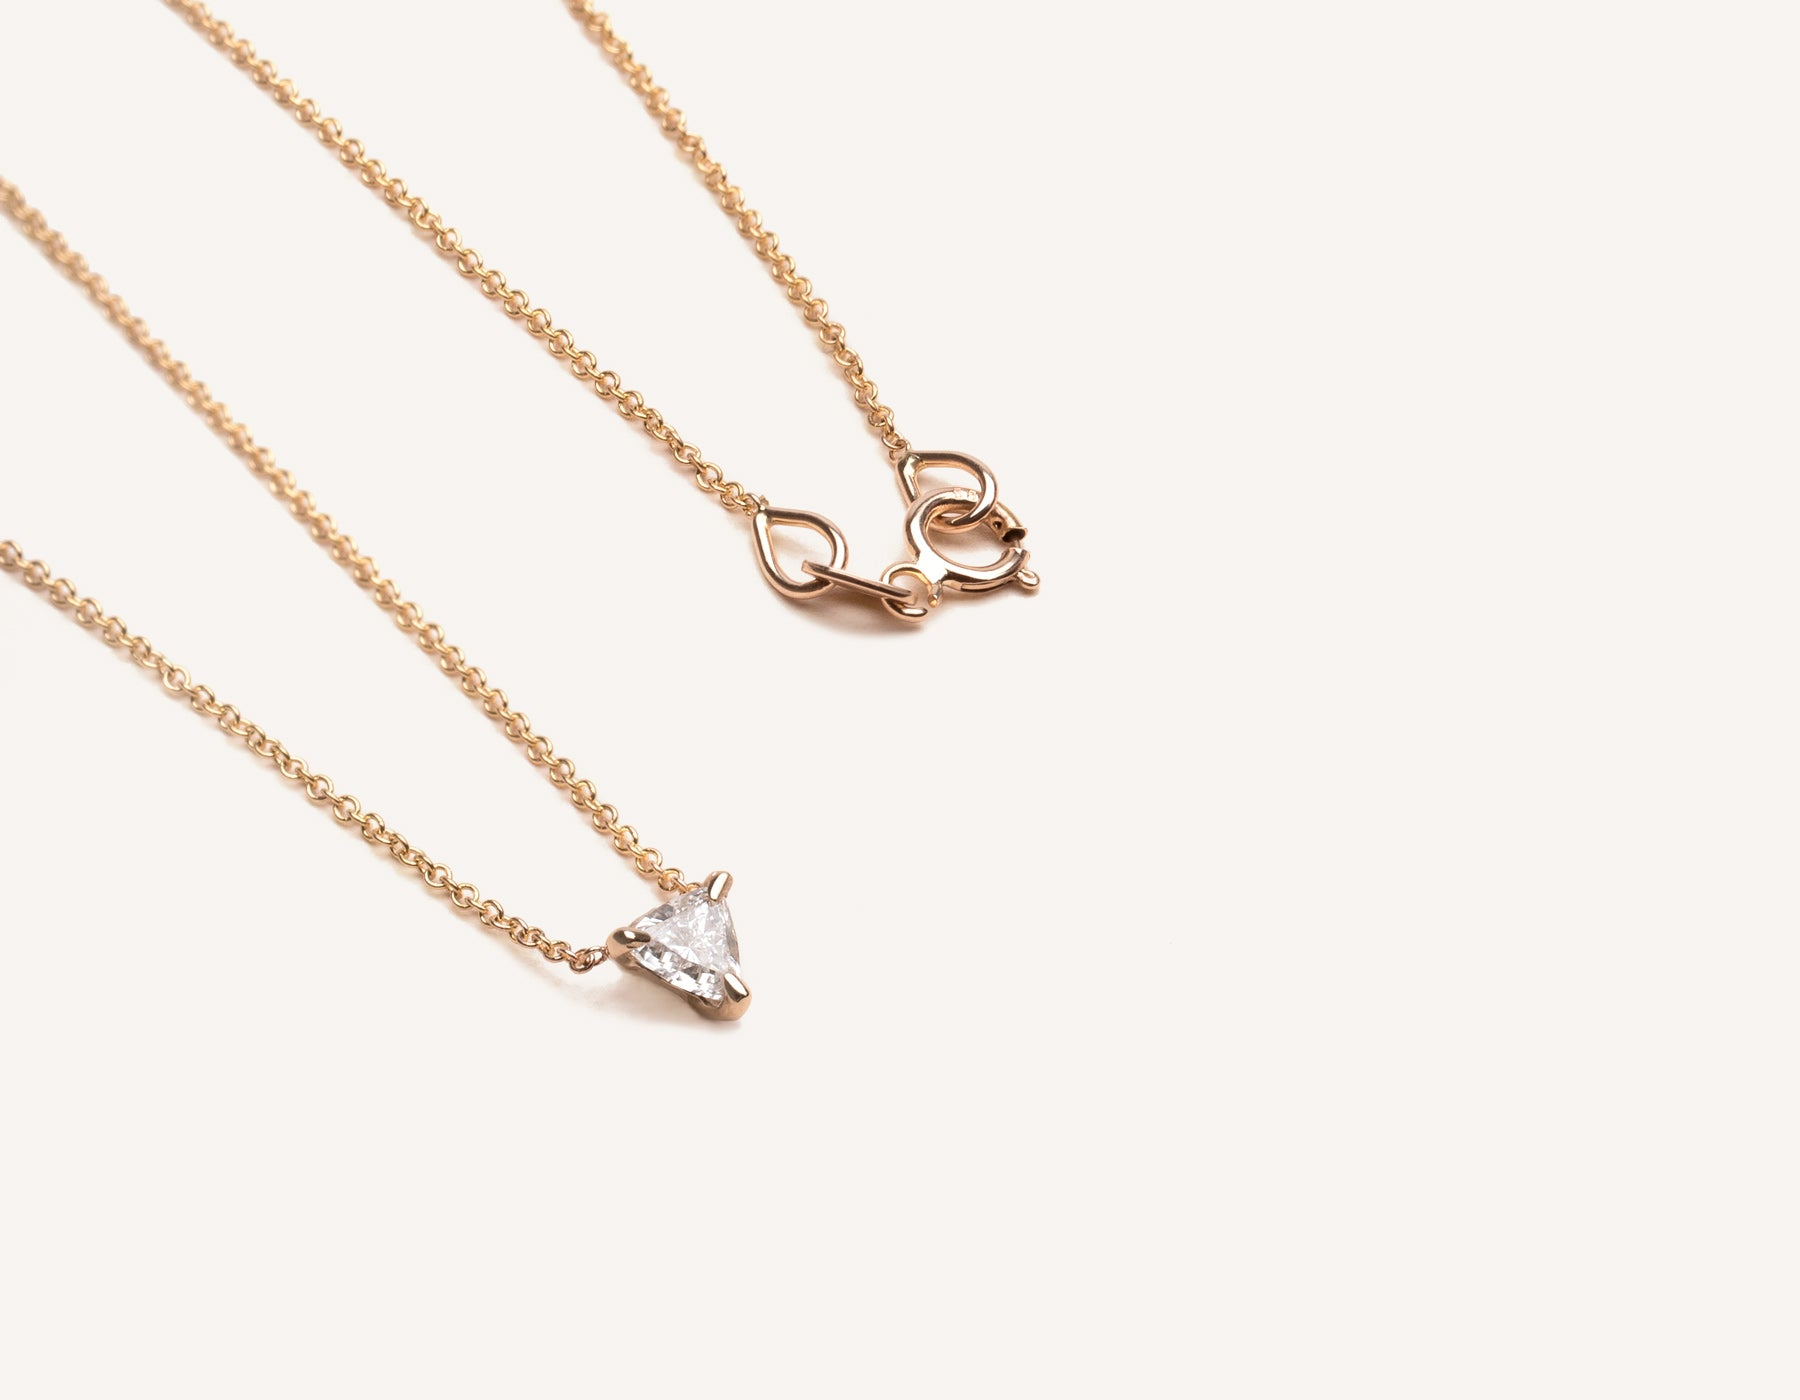 simple unique 14k solid gold .17 ct Trillion Diamond Necklace on delicate chain by Vrai & Oro modern jewelry, 14K Rose Gold